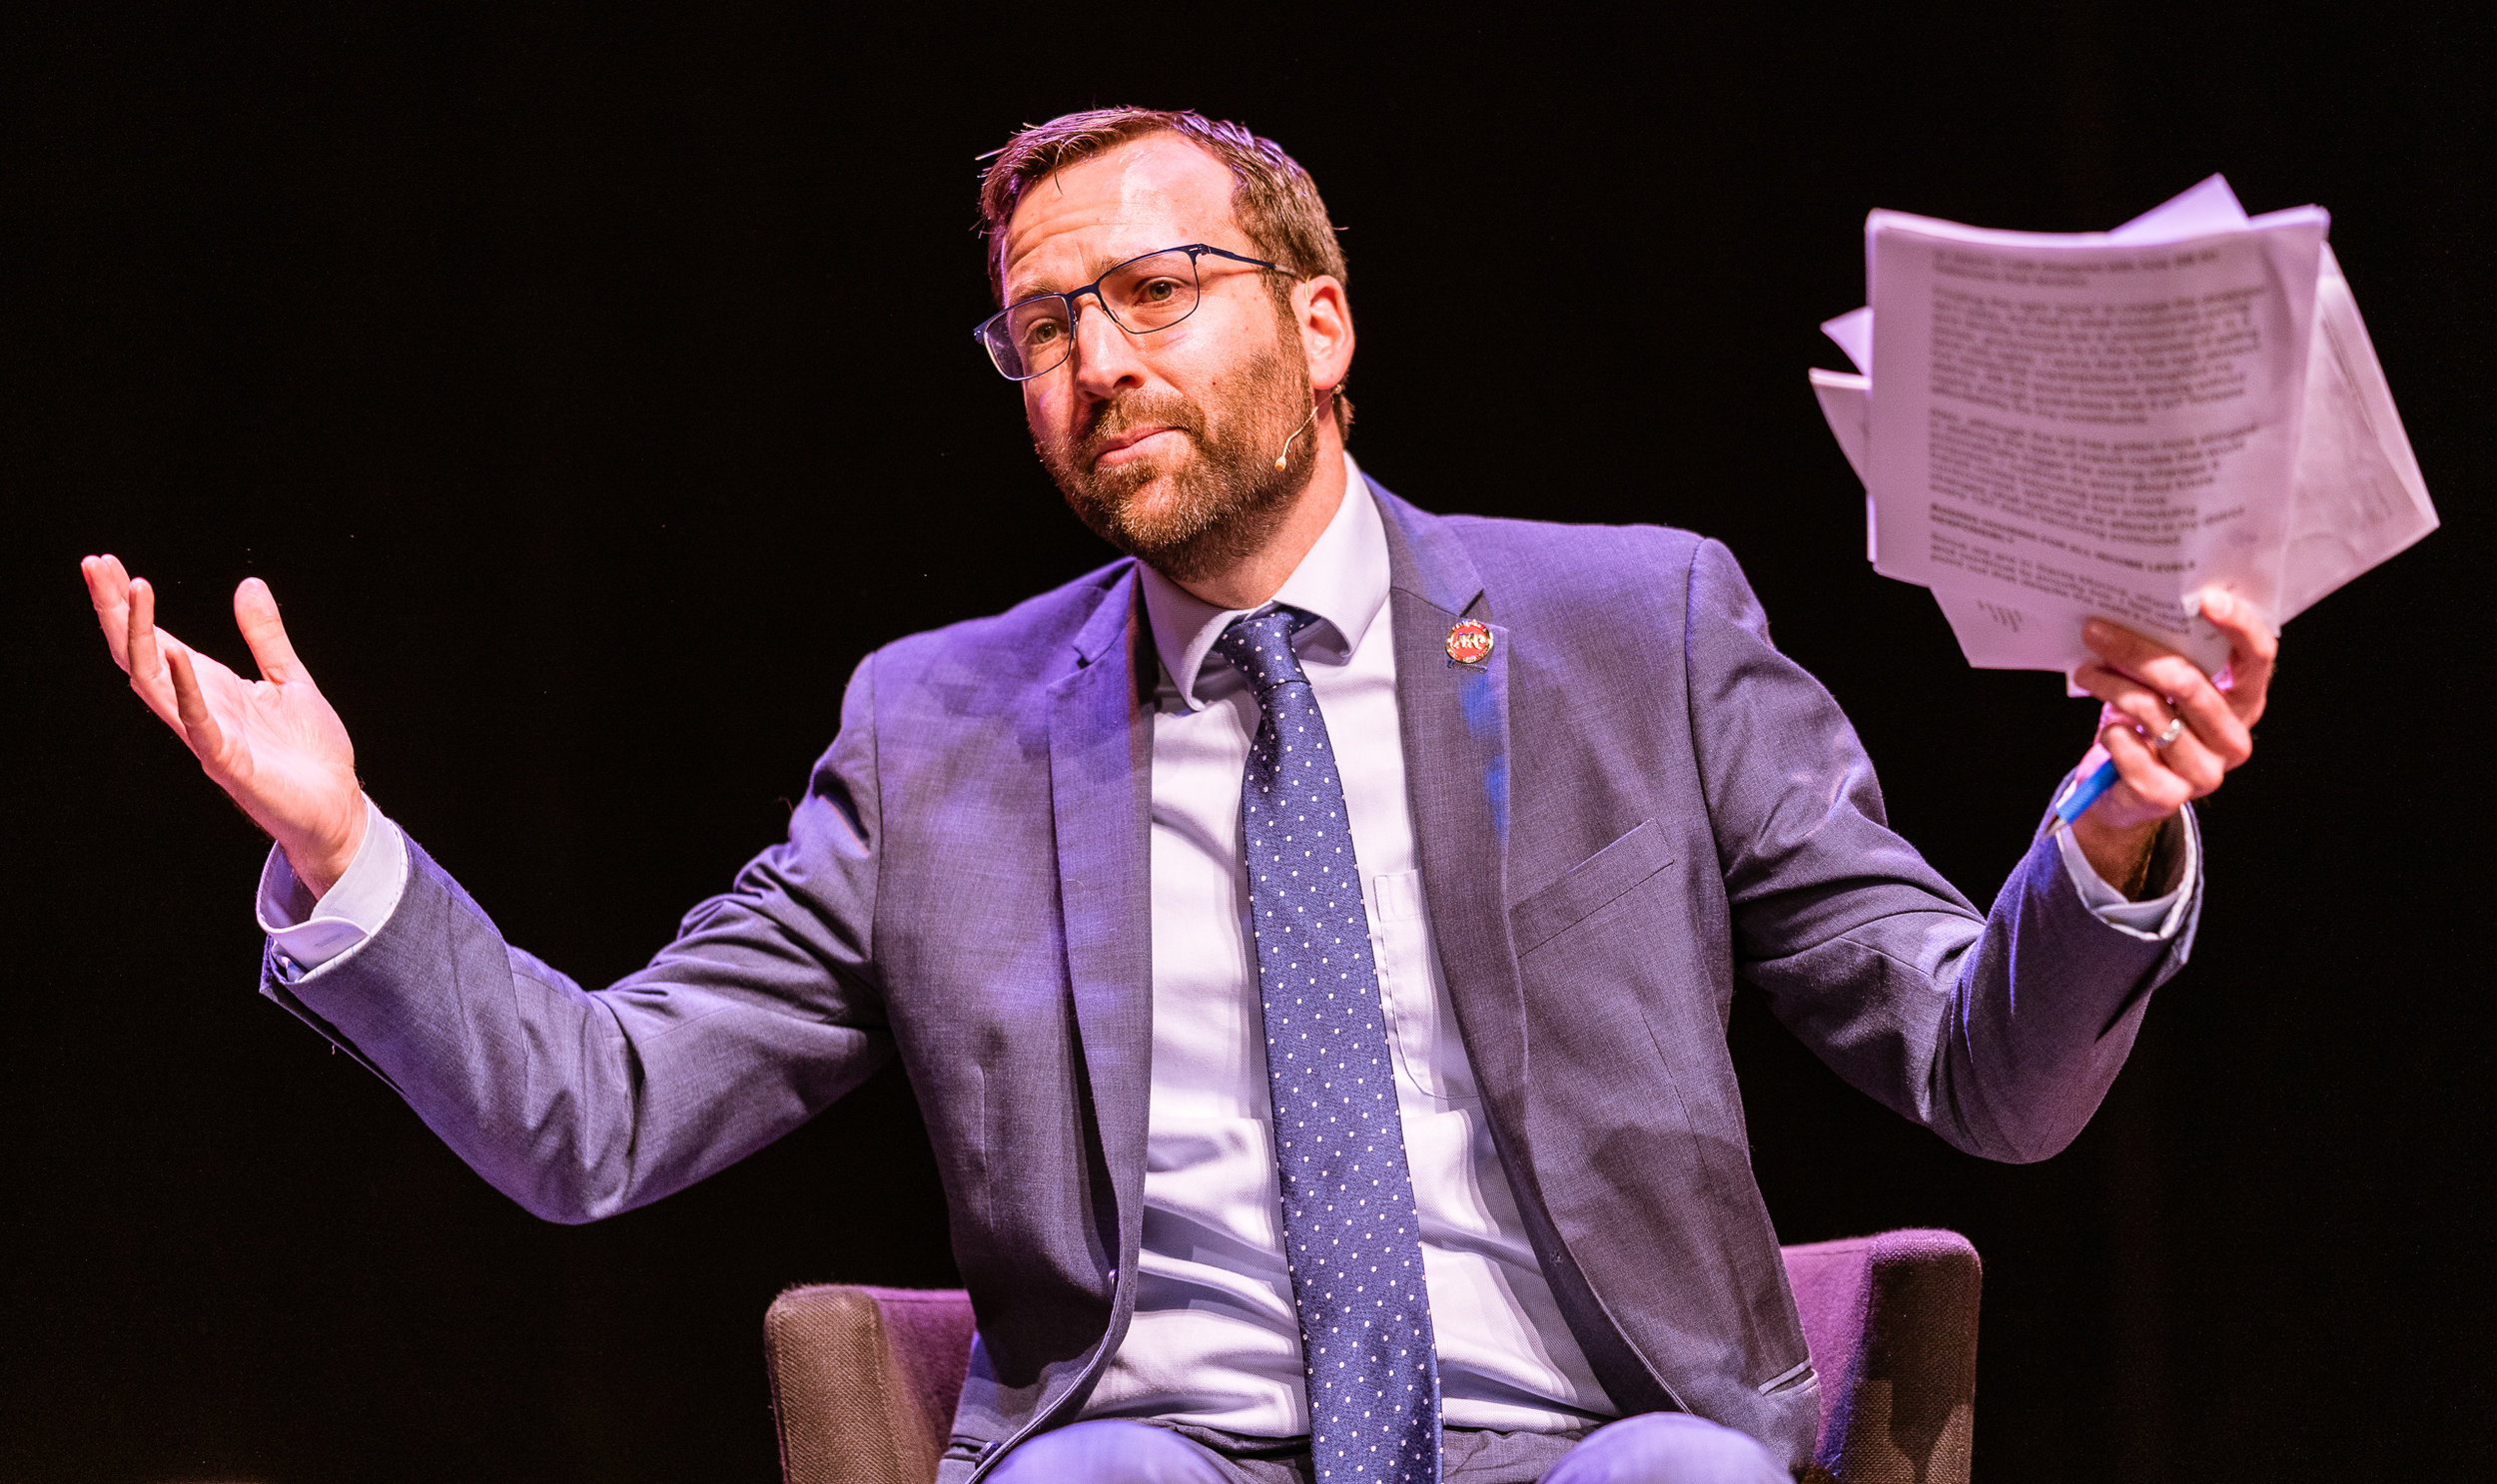 """California State Senator Ben Allen (SD26 - Santa Monica) speaks on the California Housing Crisis at """"Where Goes the Road to Solving California's Housing Crisis"""" on the SMC Broad Stage on Thursday, May 9, 2019. Senator Allen said, """"If you don't like this path [SB-50], we've got to figure out another one."""" The SMC Public Policy Institute is presenting its 8th Annual Spring Symposium, """"There Goes the Neighborhood, Part II: How might policy approaches prevent displacement in neighborhoods affected by gentrification?"""" from May 4-9. Tonight's final event in the series is """"Where Goes the Road to Solving California's Housing Crisis? A Keynote Discussion with Legislative Leaders."""" The panel includes California state legislators Senator Ben Allen (SD26 – Santa Monica) and Senator Scott Weiner (SD11 – San Francisco), author of SB 50 which proposes bold approaches to California's housing issues, and Santa Monica Mayor Gleam Davis, a former Co-Chair of Santa Monicans for Renters' Rights and leading advocate for Santa Monica's innovative policy solutions and funding for affordable housing."""" (Glenn Zucman/The Corsair)"""